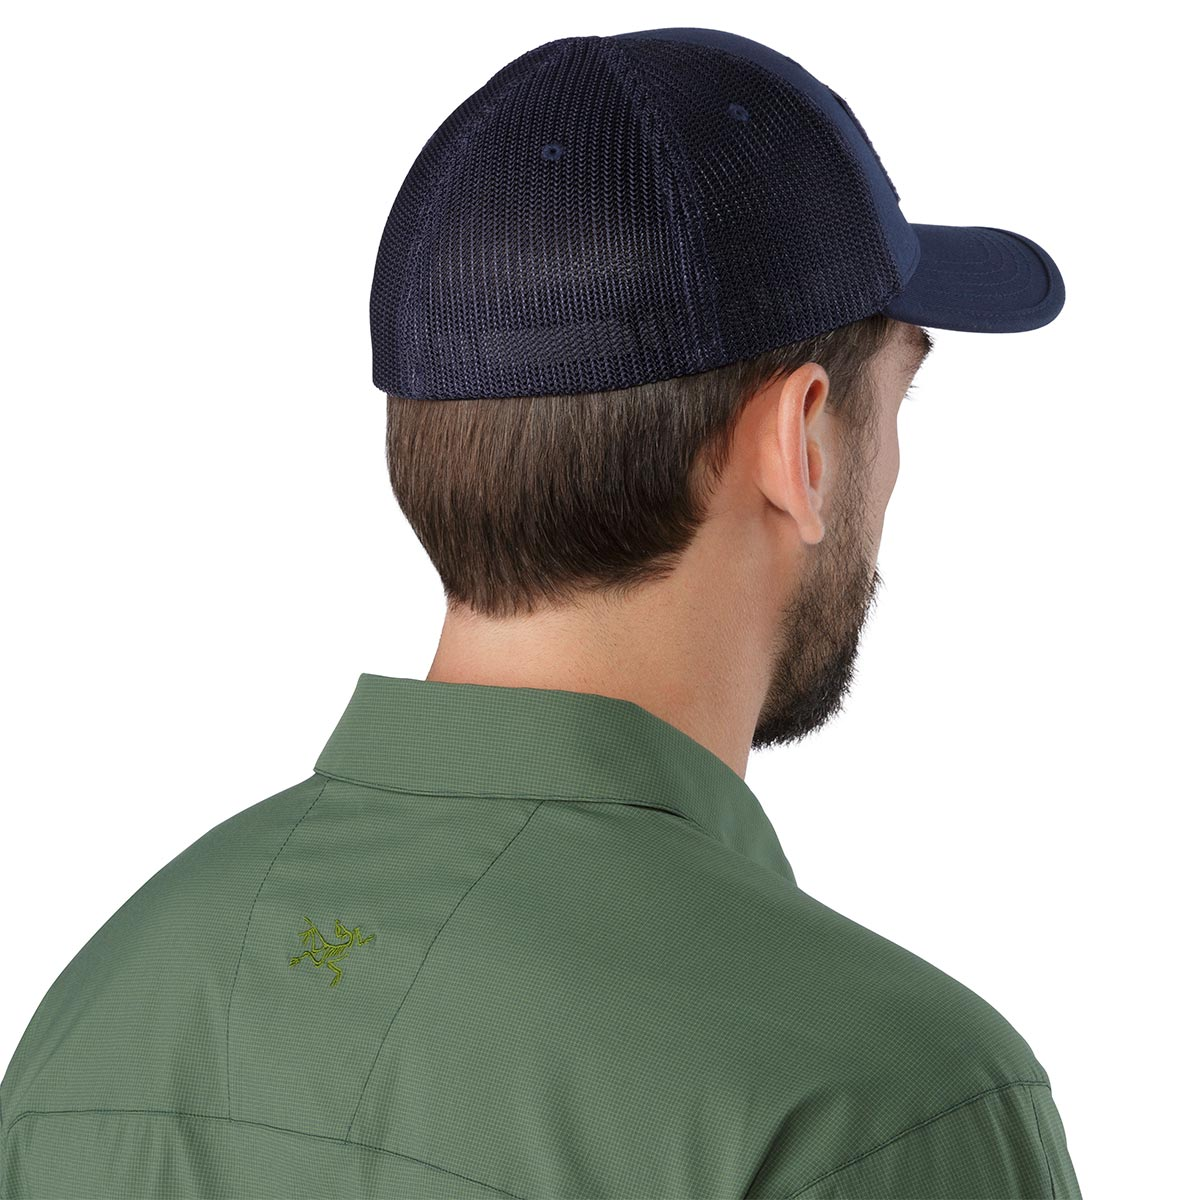 Arc Teryx B A C Hat Head Gear Clothing Accessories